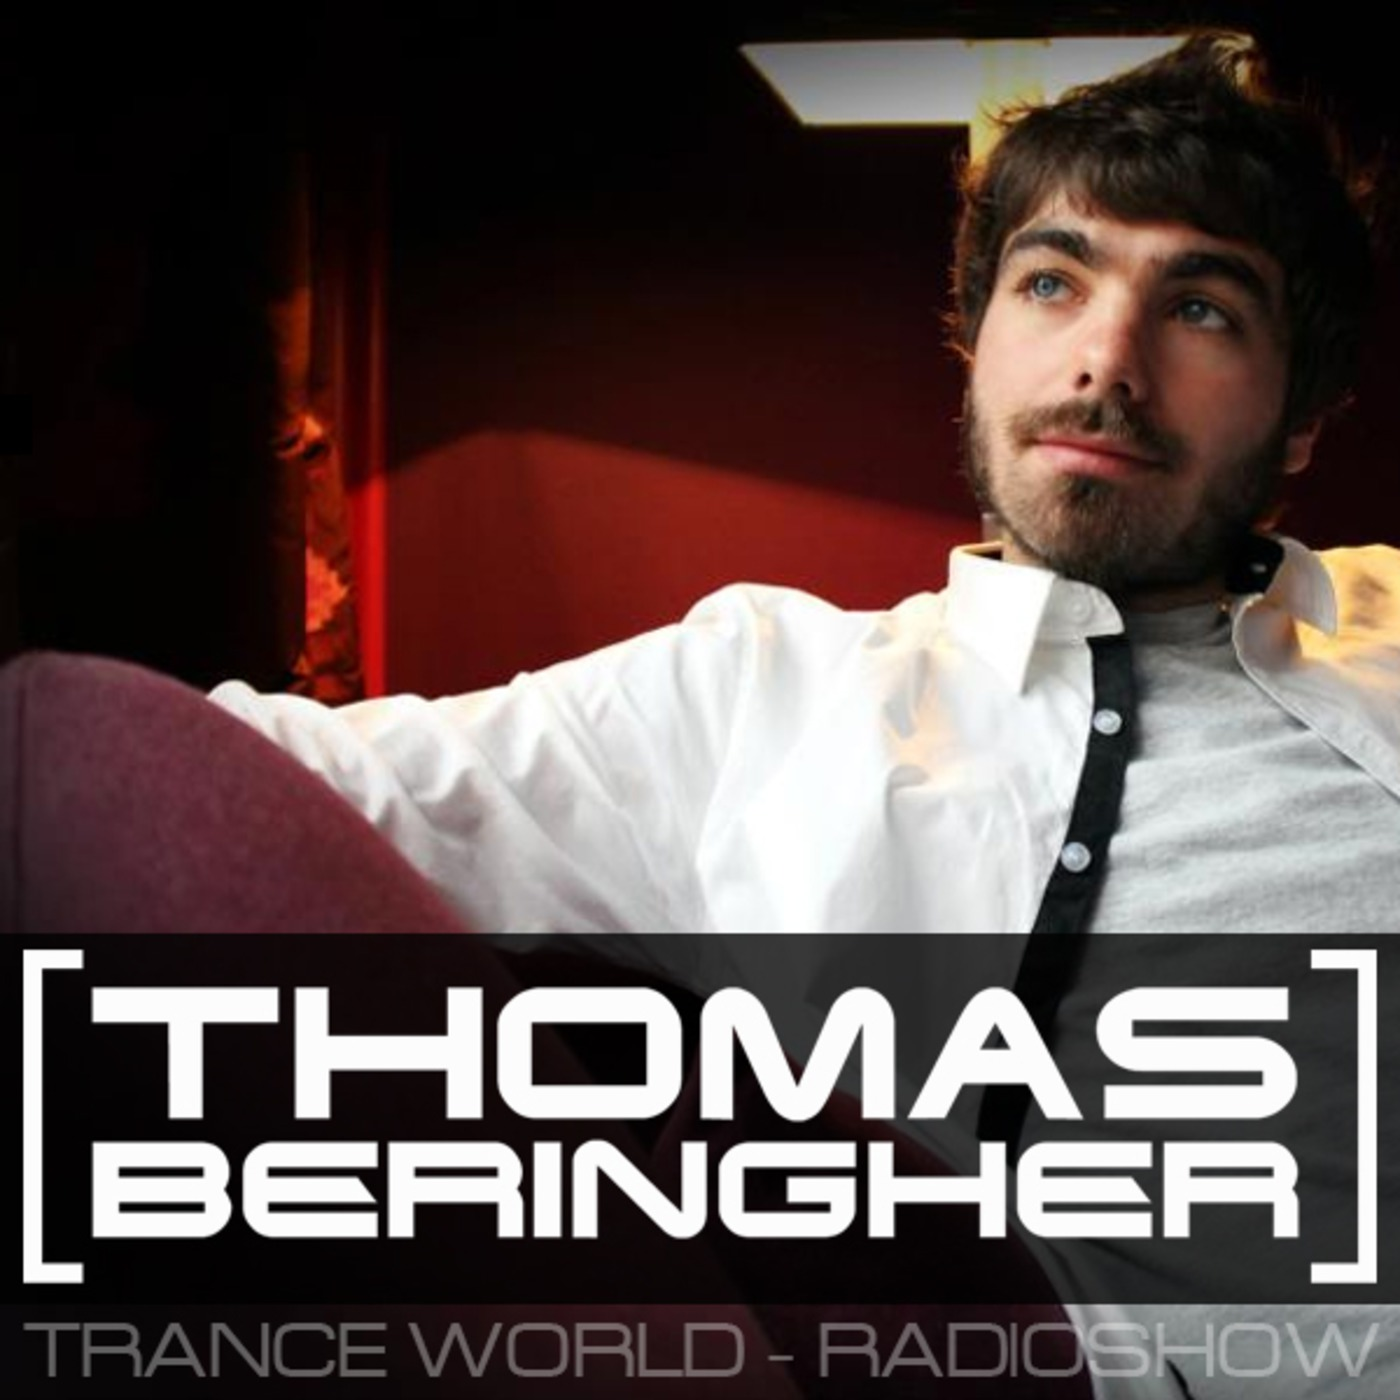 Thomas Beringher - Trance World